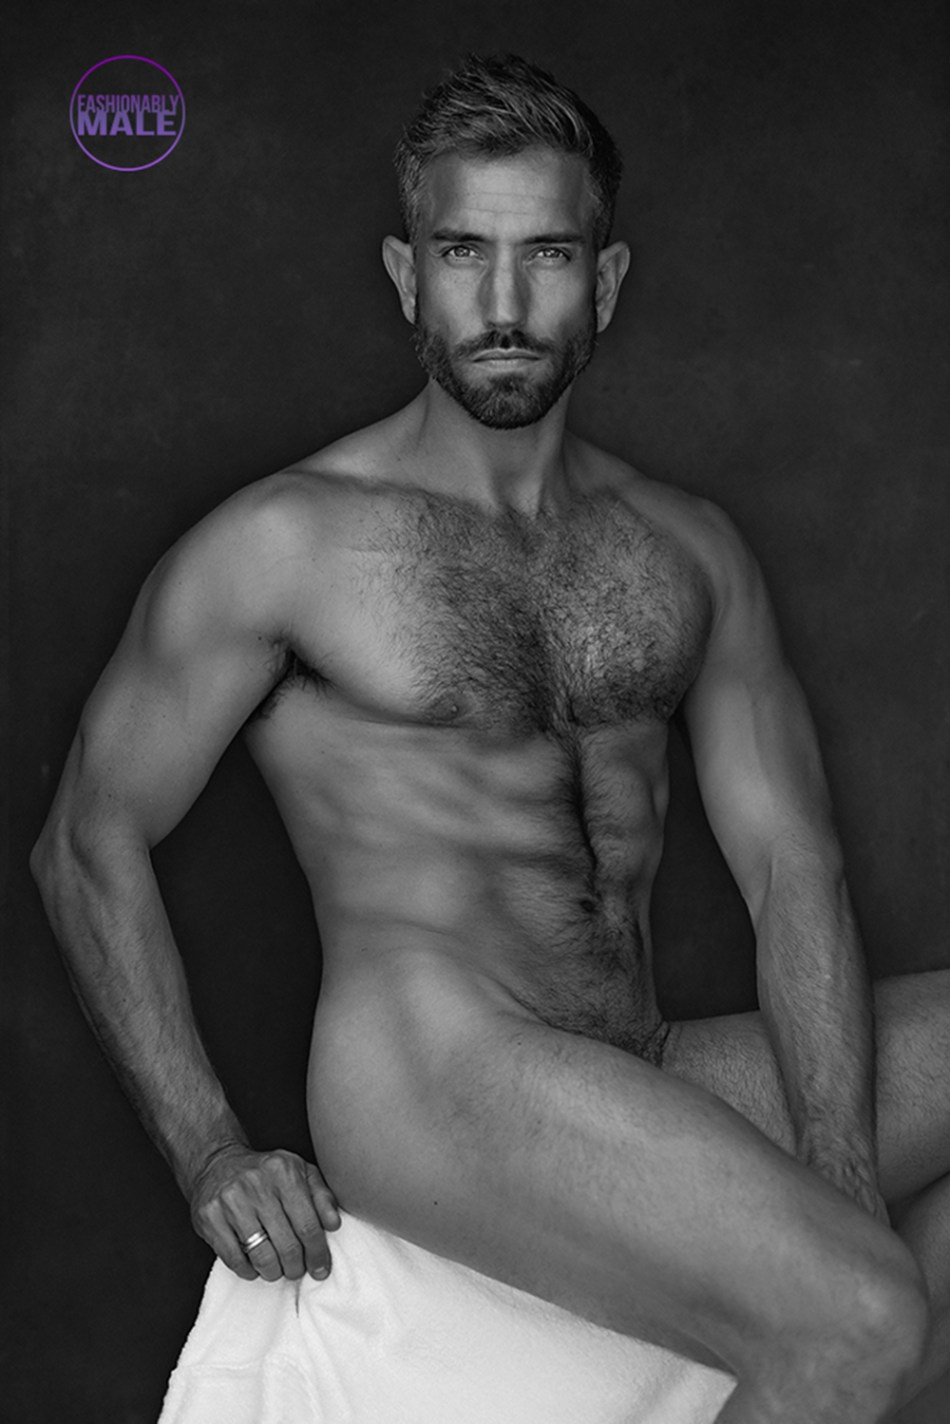 Stephane Marti by Shotsbygun for Fashionably Male11